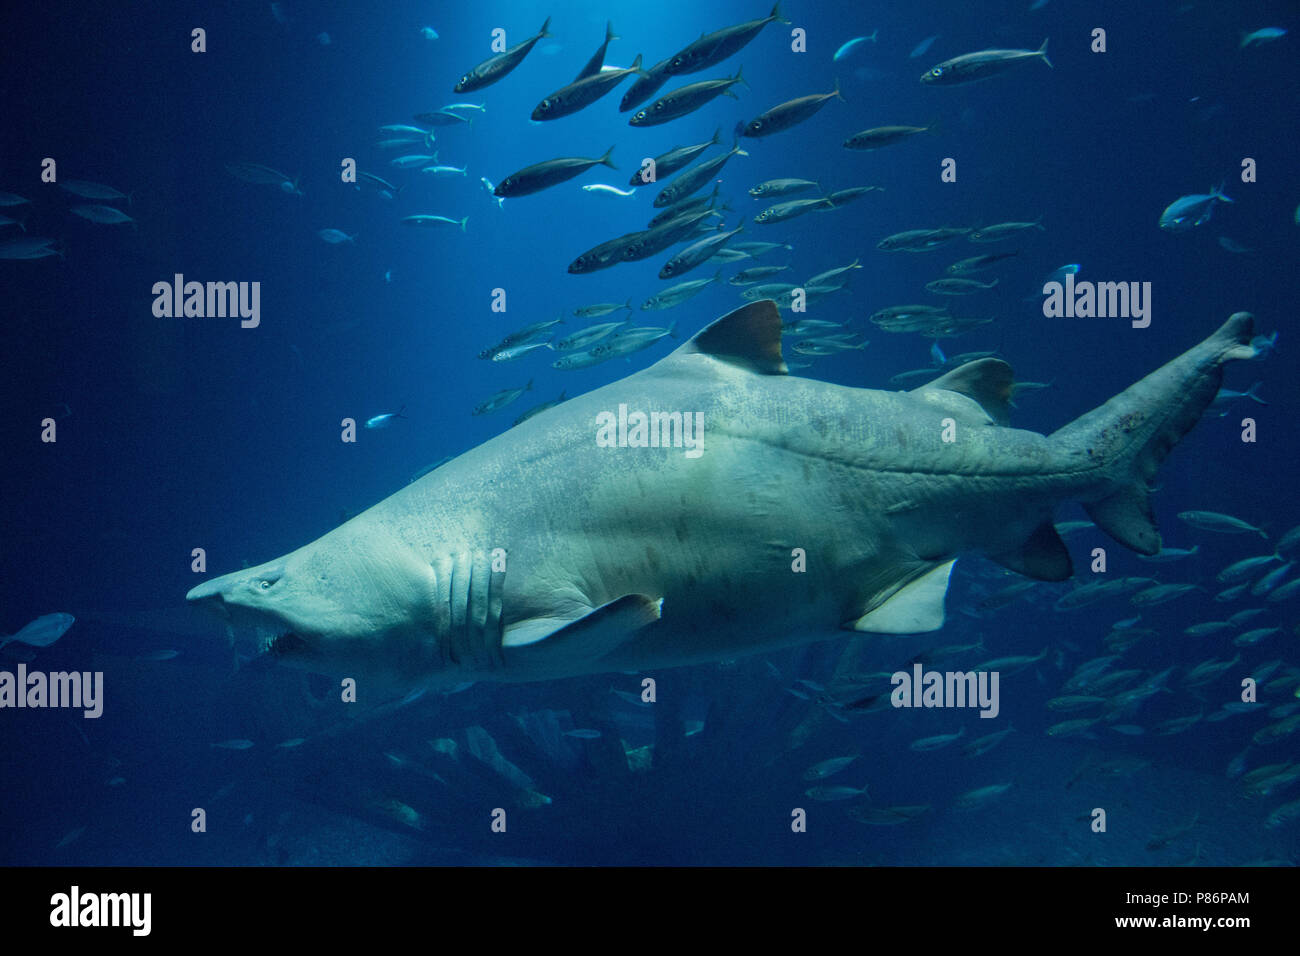 09 July 2018 Germany Stralsund A Sand Tiger Shark Swims In The